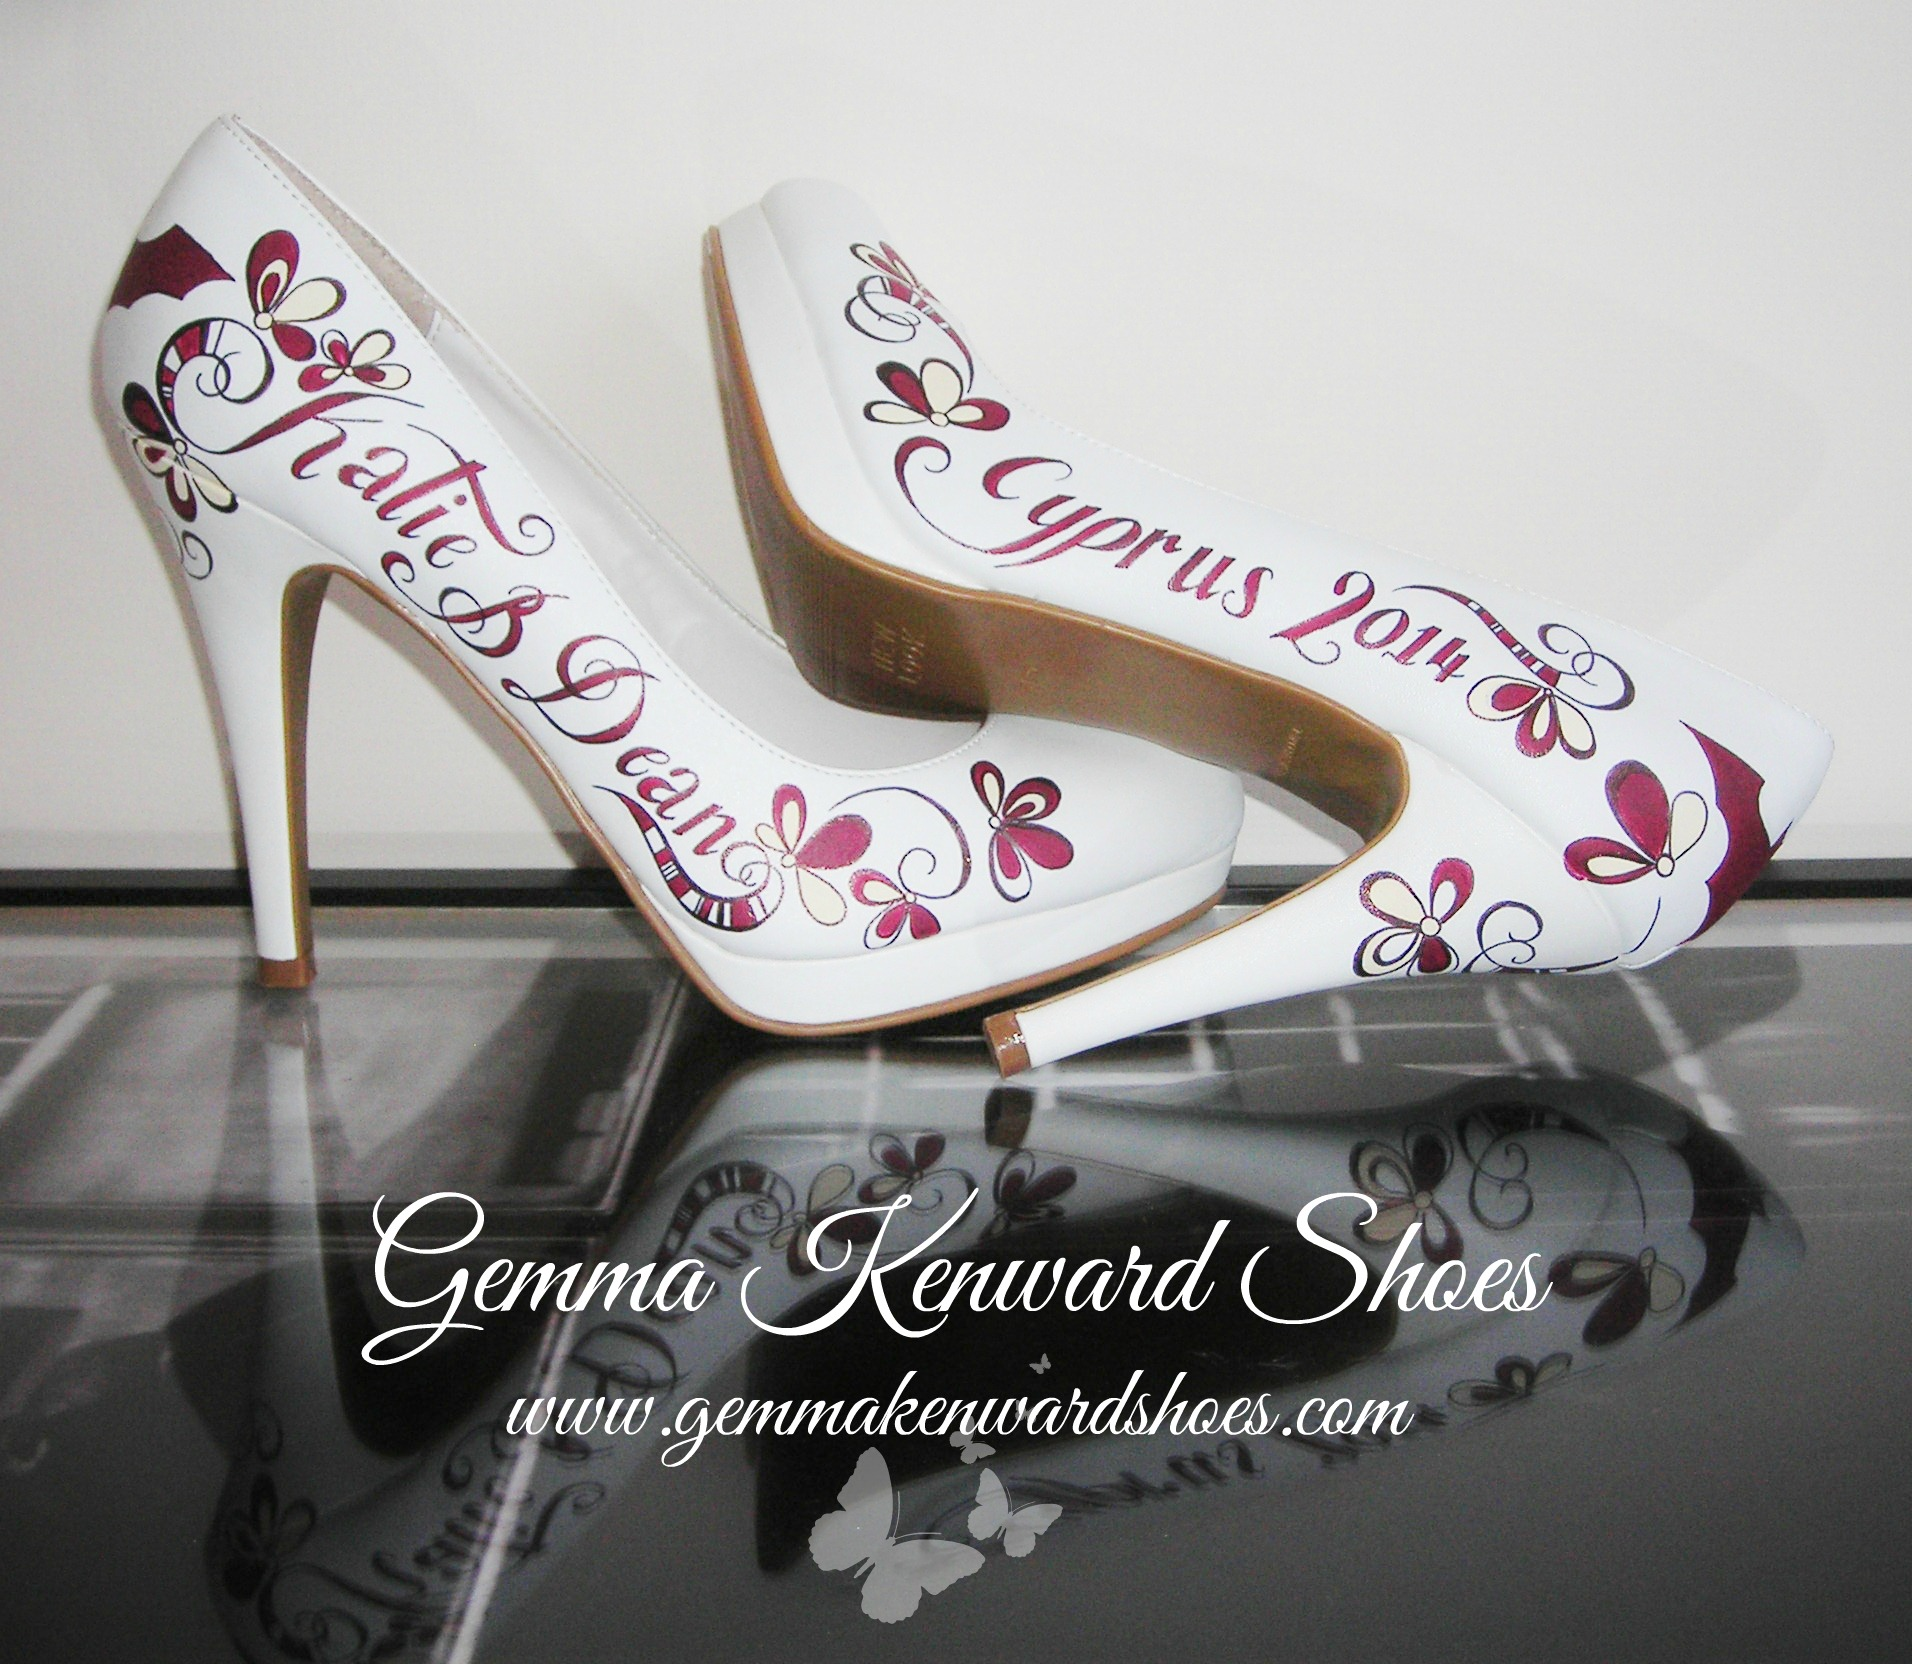 Wedding court shoes customised with Batman symbols and non-girly flowers